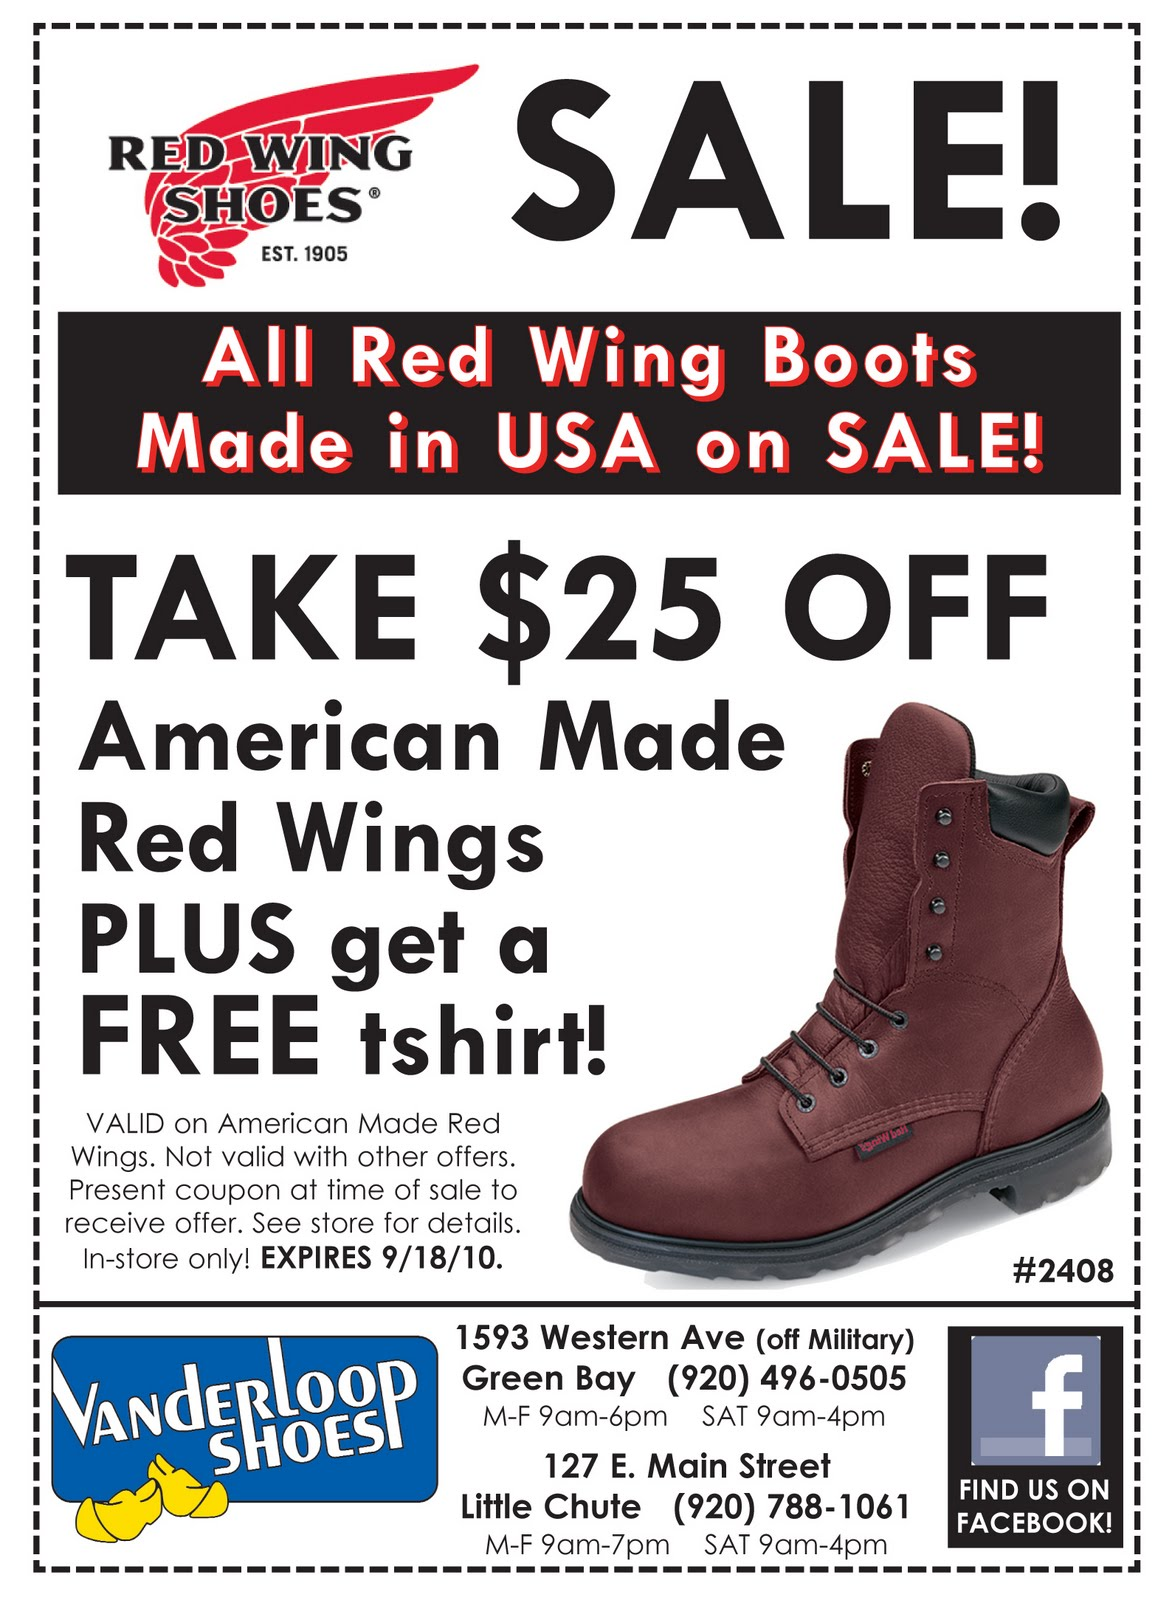 Save money with 9 Red Wing Shoes promo codes, discount codes in December Today's top Red Wing Shoes discount. New King Toe ADC Works Boots!. Top 1 Promo Codes. Go. Red Wing Shoes Promo Codes December Red Wing Shoes Promo Codes in December are updated and verified. Today's top Red Wing Shoes Promo Code.